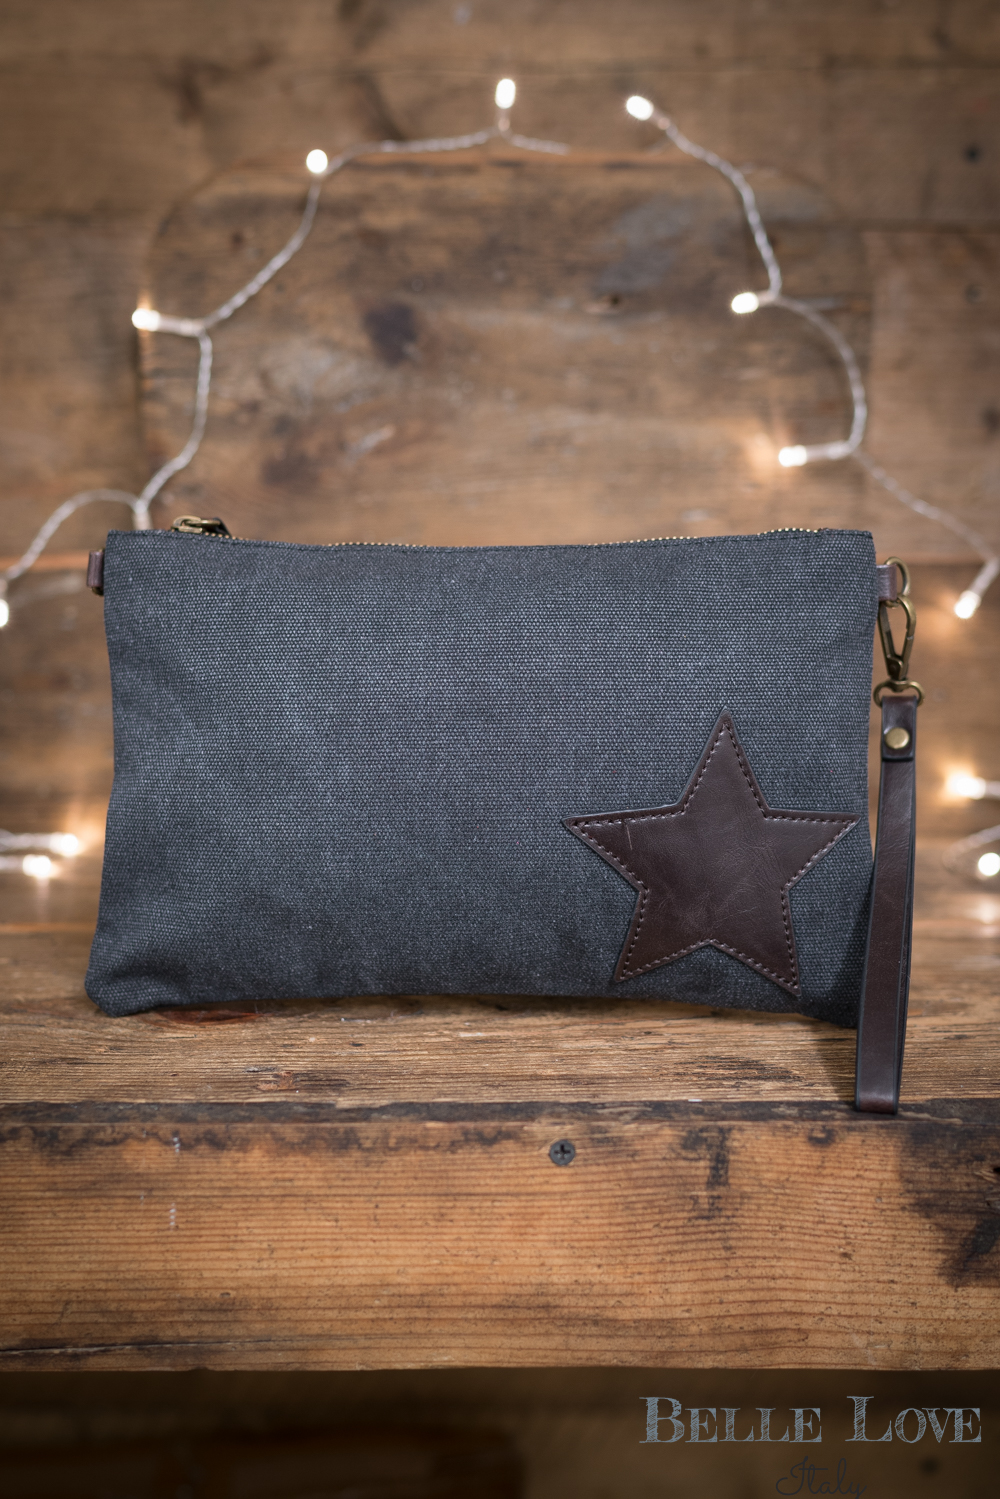 Belle Love Italy Canvas Leather Look Star Bag